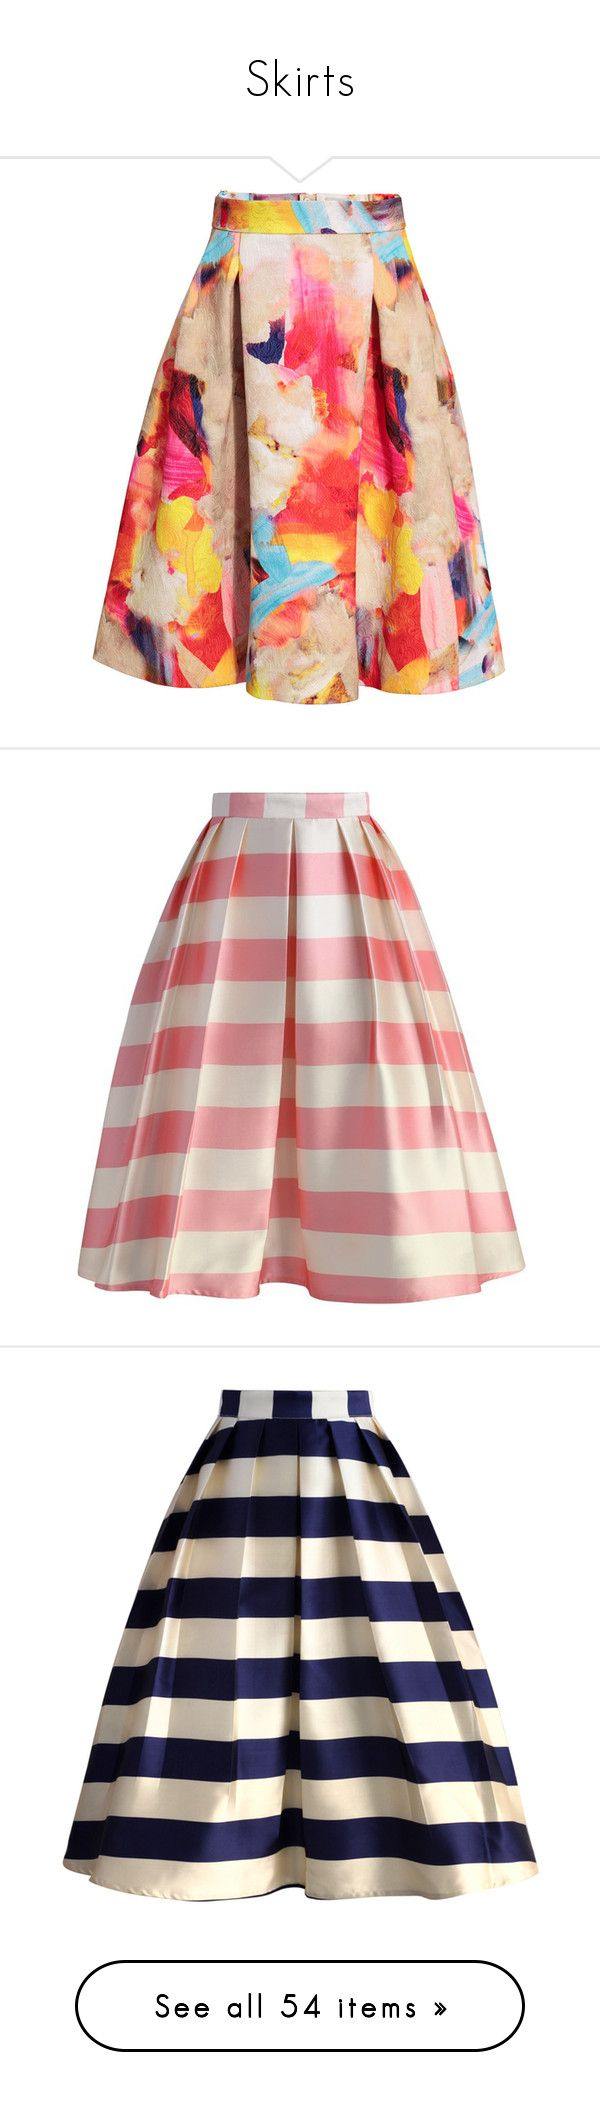 how to make a circle skirt with patterned fabric